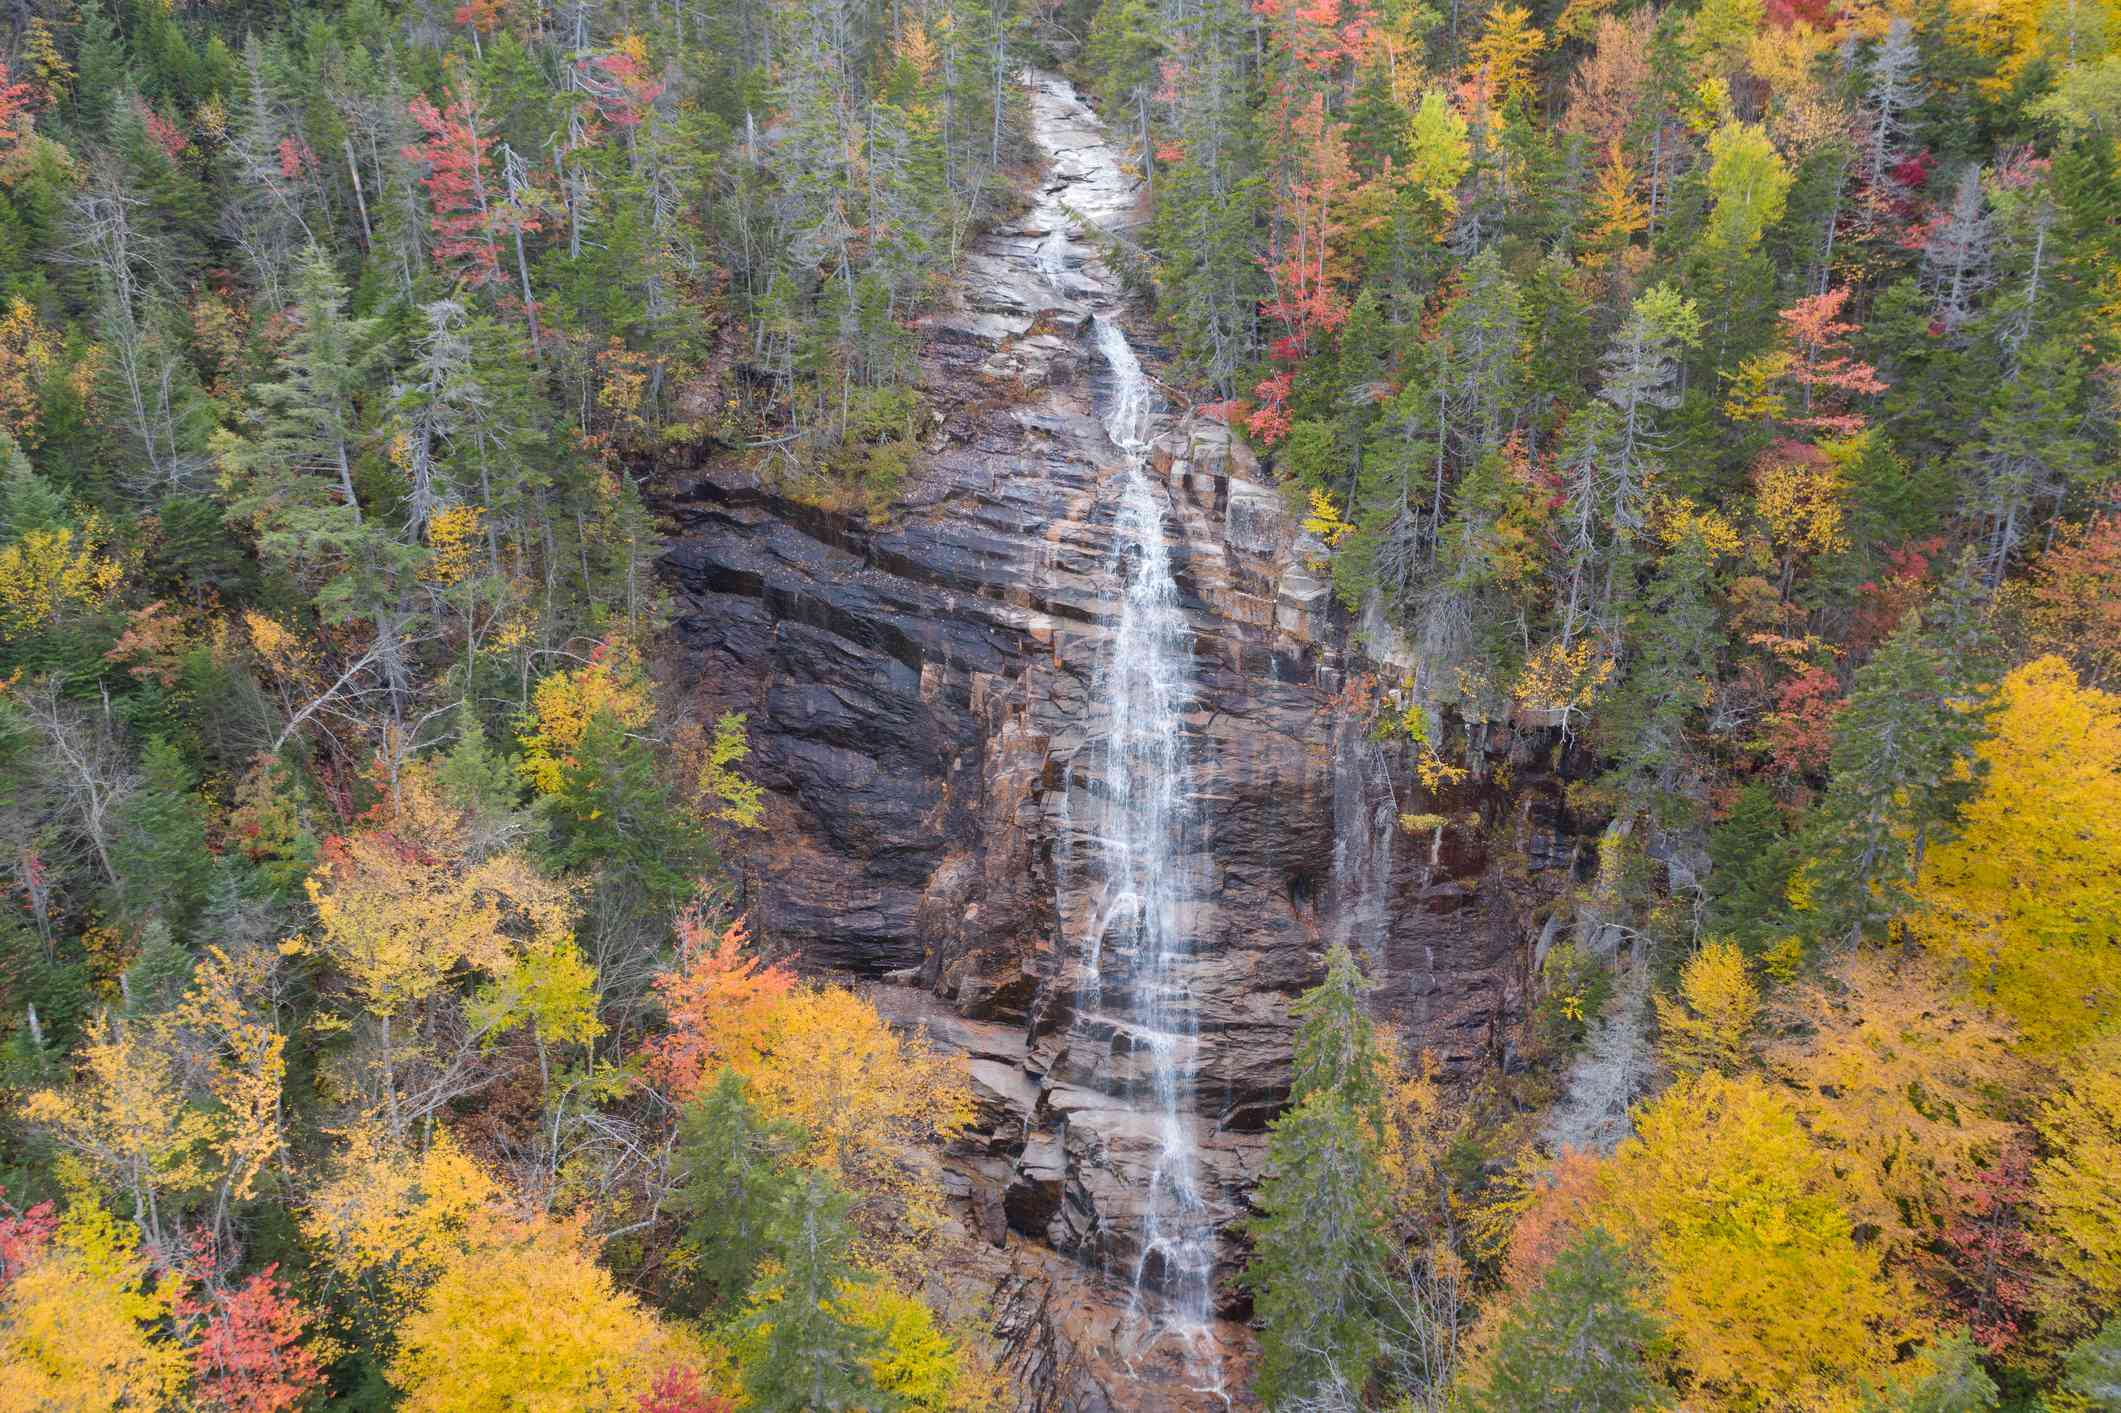 waterfall going down rocks in a forest of autumn trees